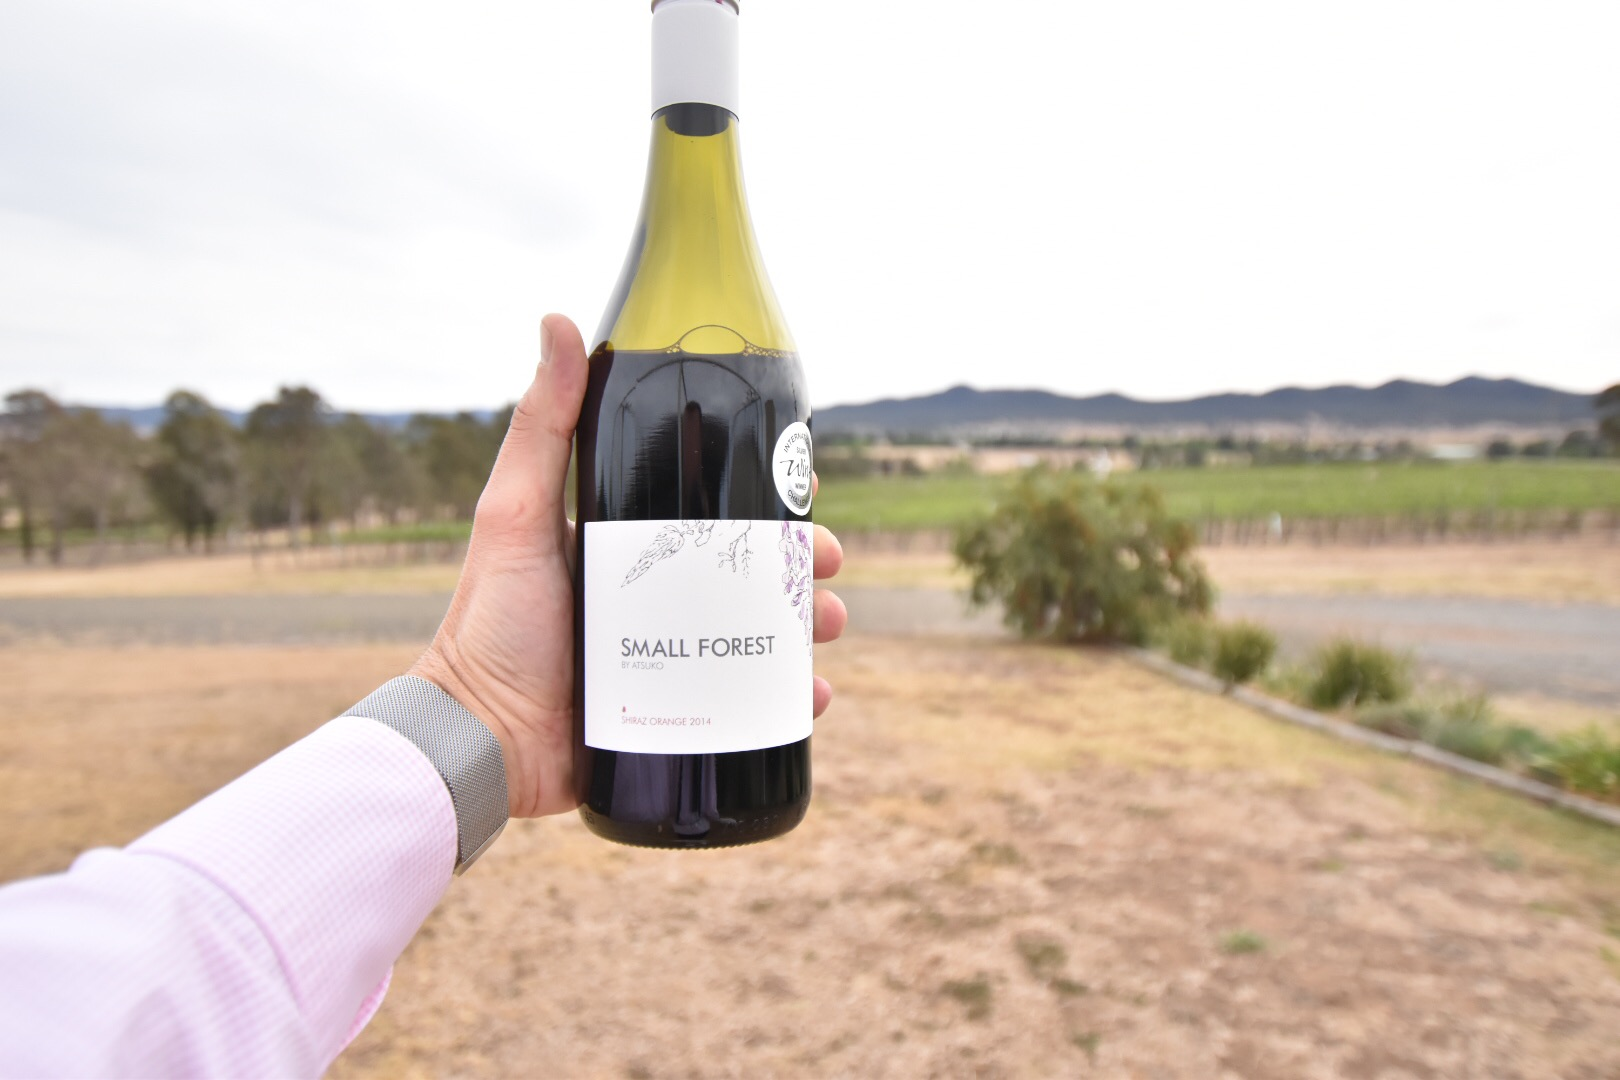 sydney food wine blog hunter valley shiraz small forest by atsuko wines